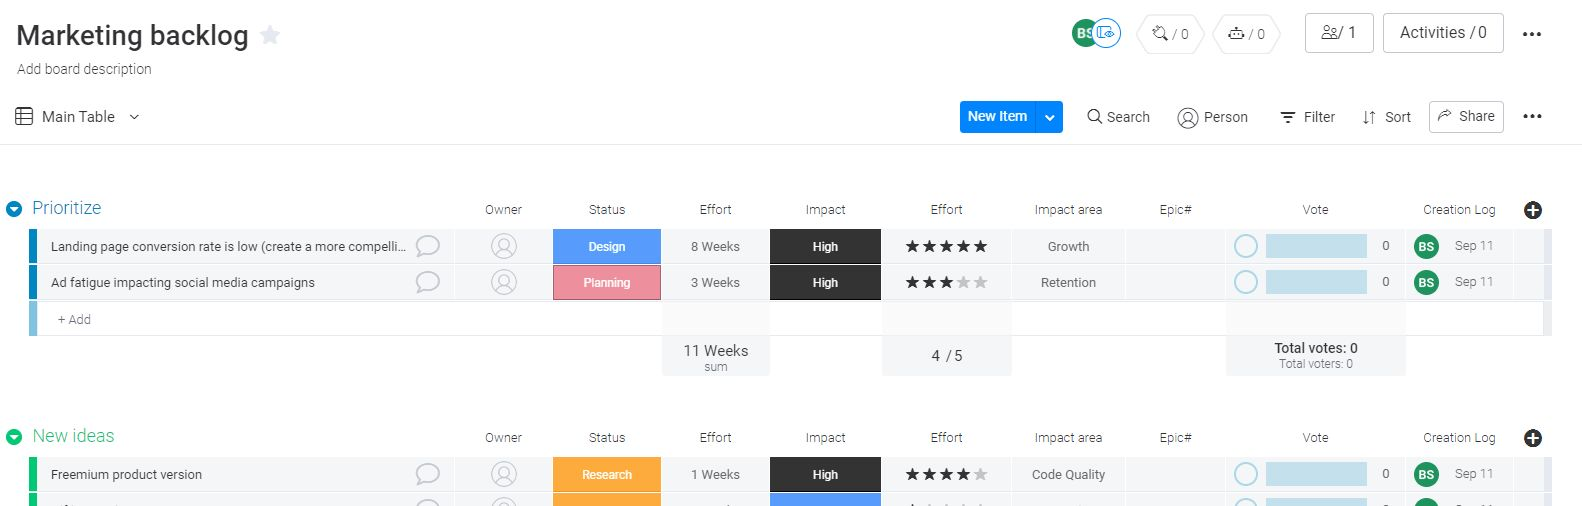 Screenshot of monday monday marketing backlog UI